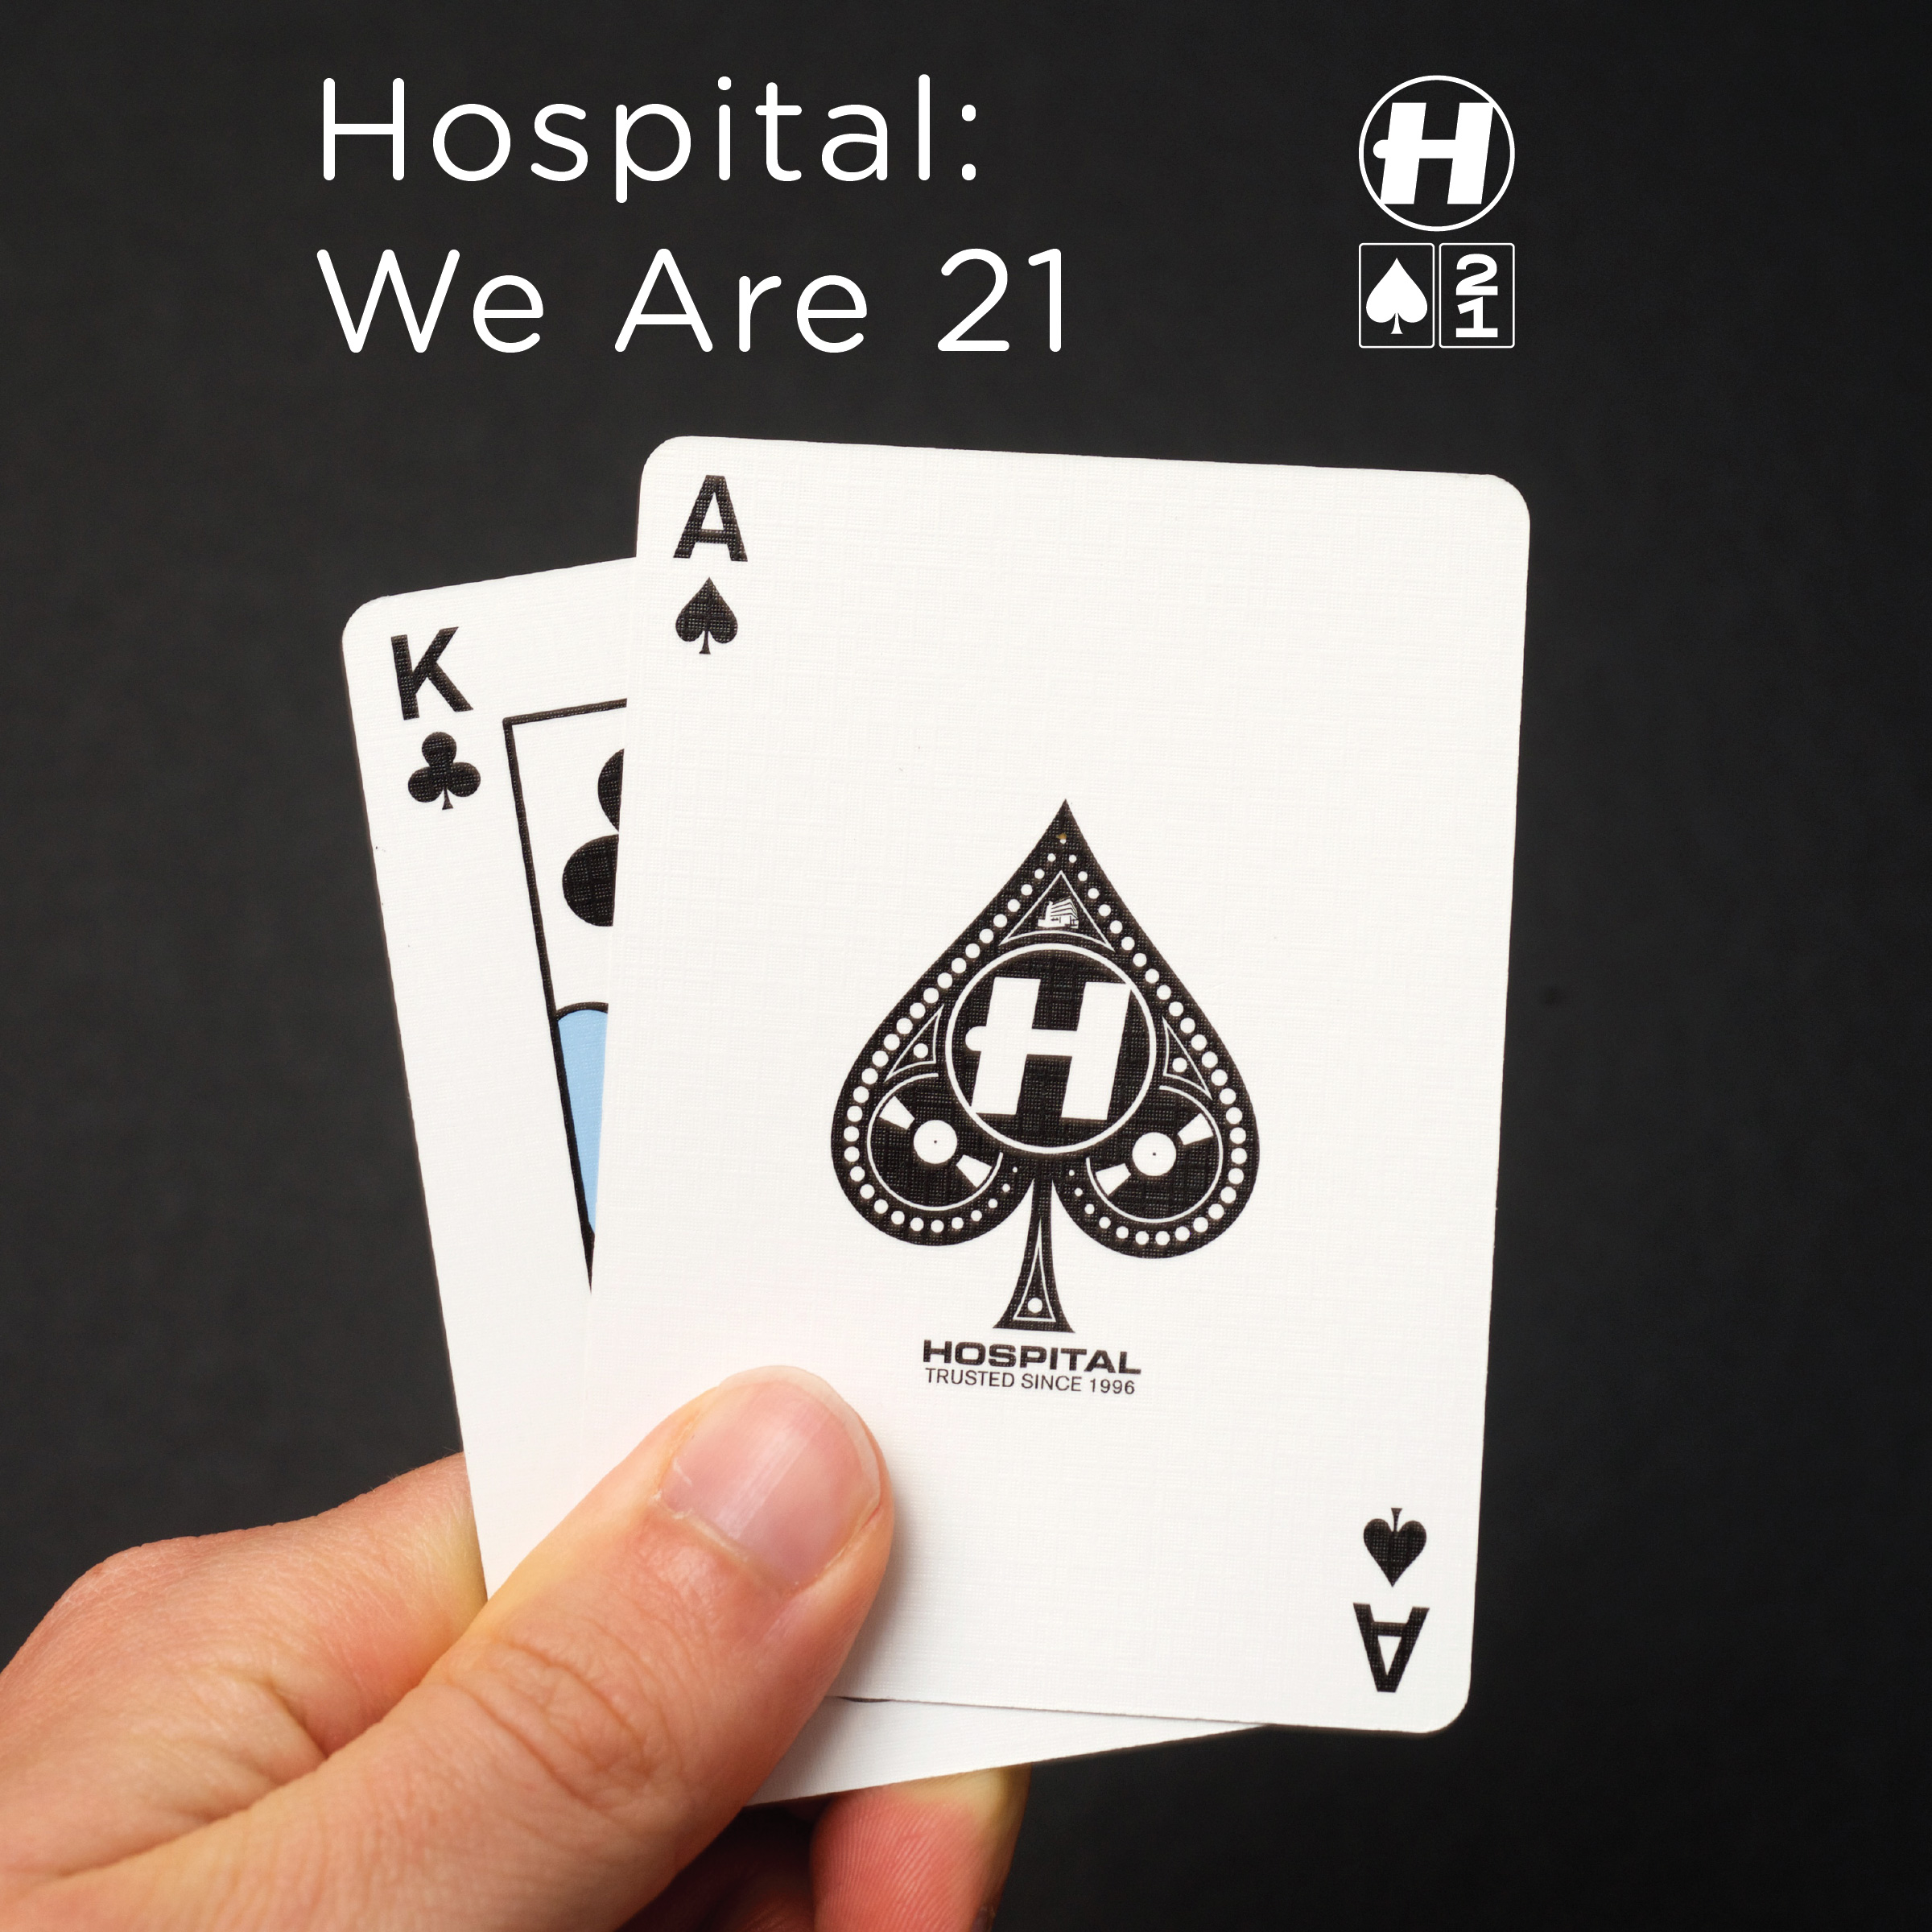 New music released by Hospital Records including Ambient Jazz Ensemble, Dylan Colby, Machinedrum, London Elektricity and tonnes of other fine heavyweight cinematic sounds for the dancewfloor to celebrate 21 years of Hospitality. We Are 21 !